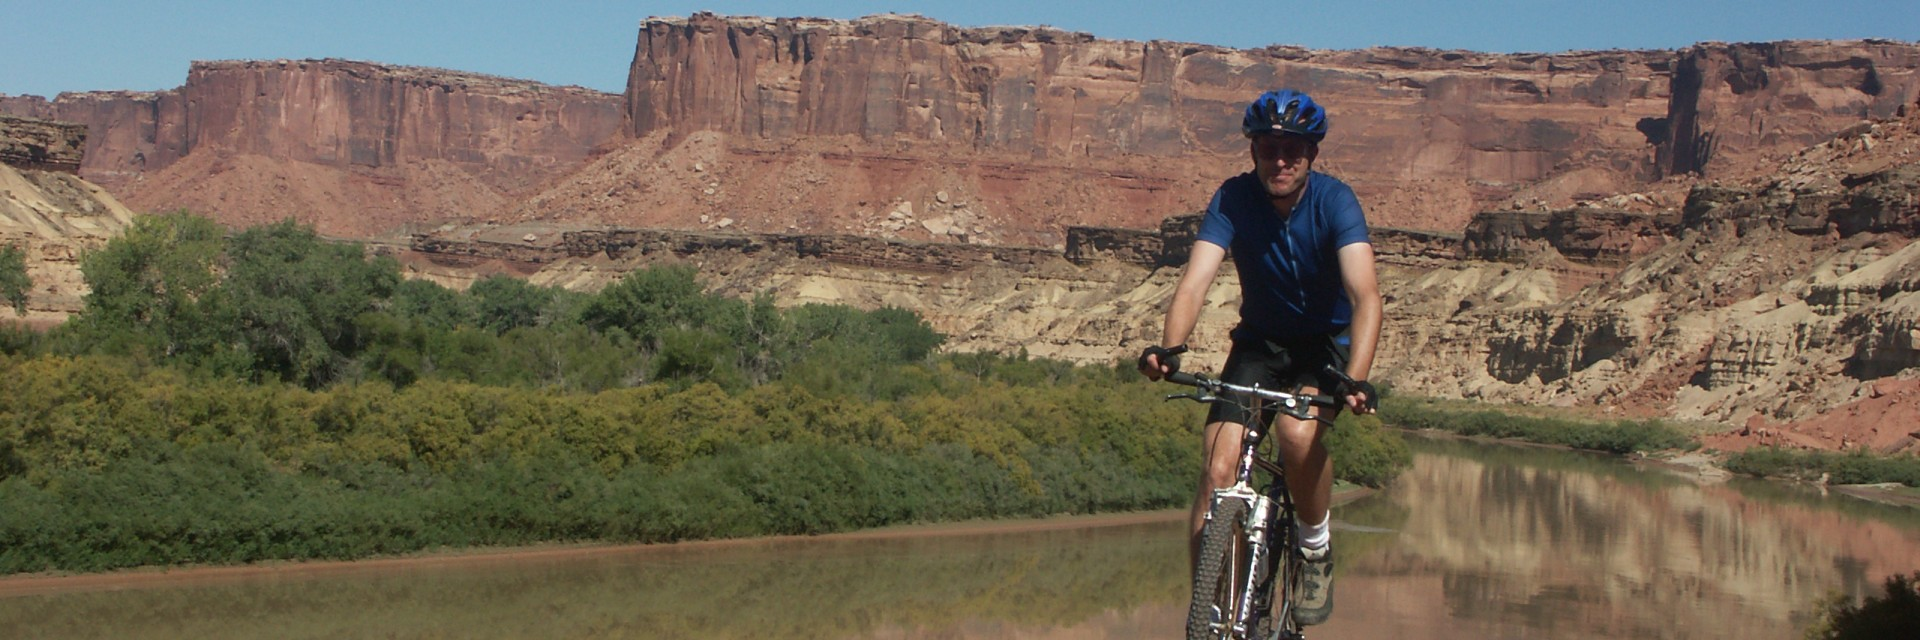 The White Rim Trail two-track road drops down to river level near Potato Bottom where mountain bikers get a close up view